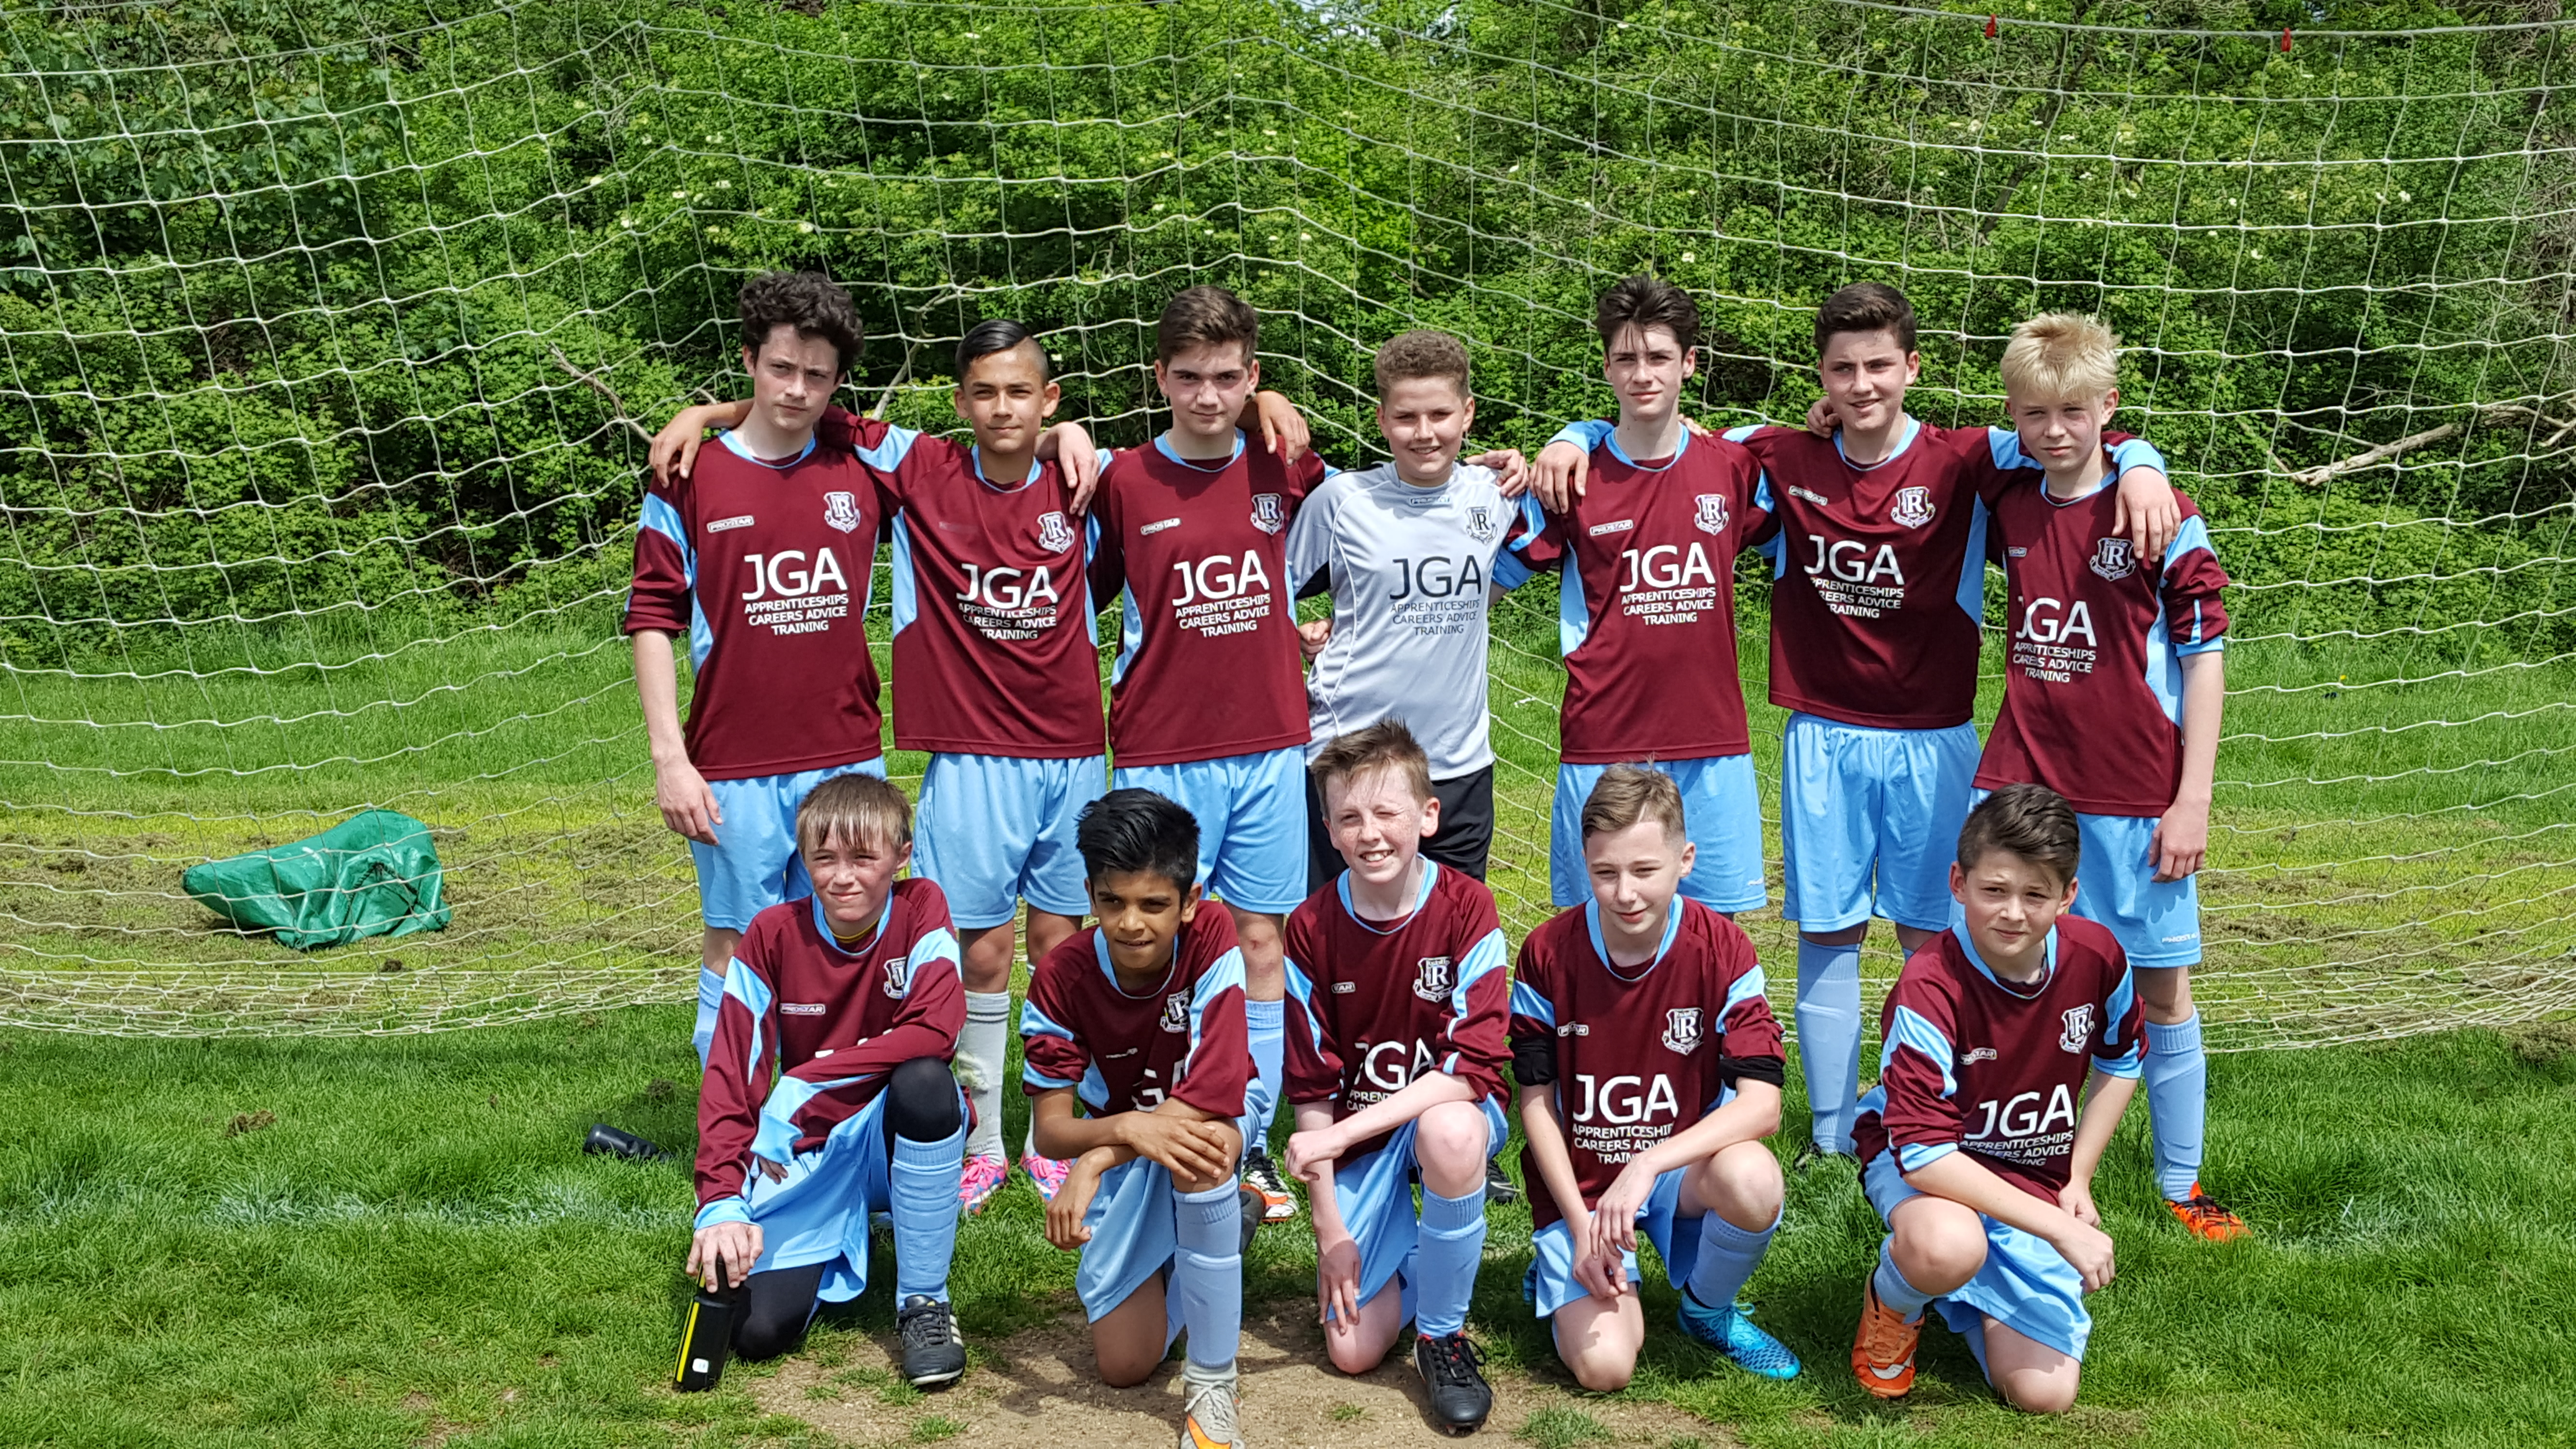 Congratulations to our Under 14 Colts team on winning promotion